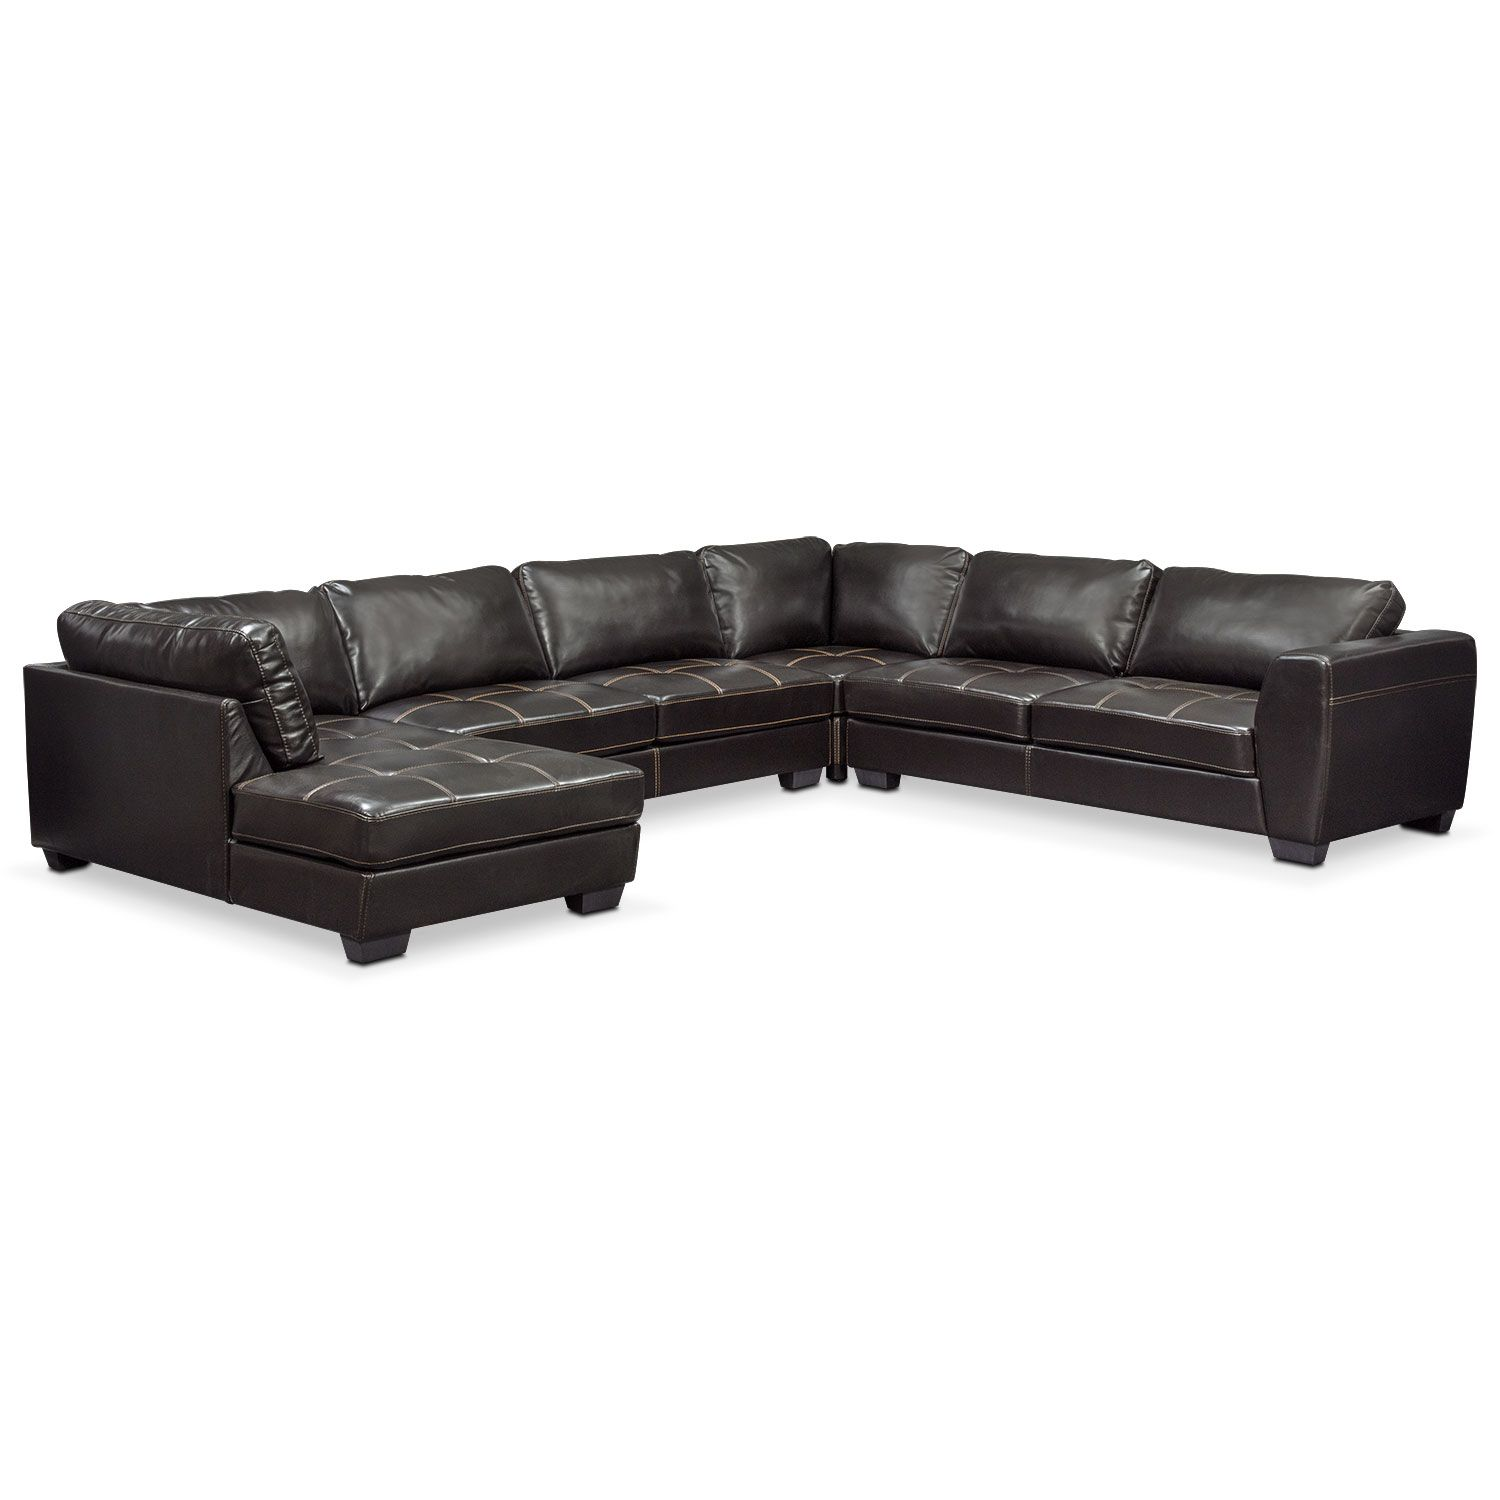 Best Santana 4 Piece Sectional With Chaise Furniture Leather 400 x 300